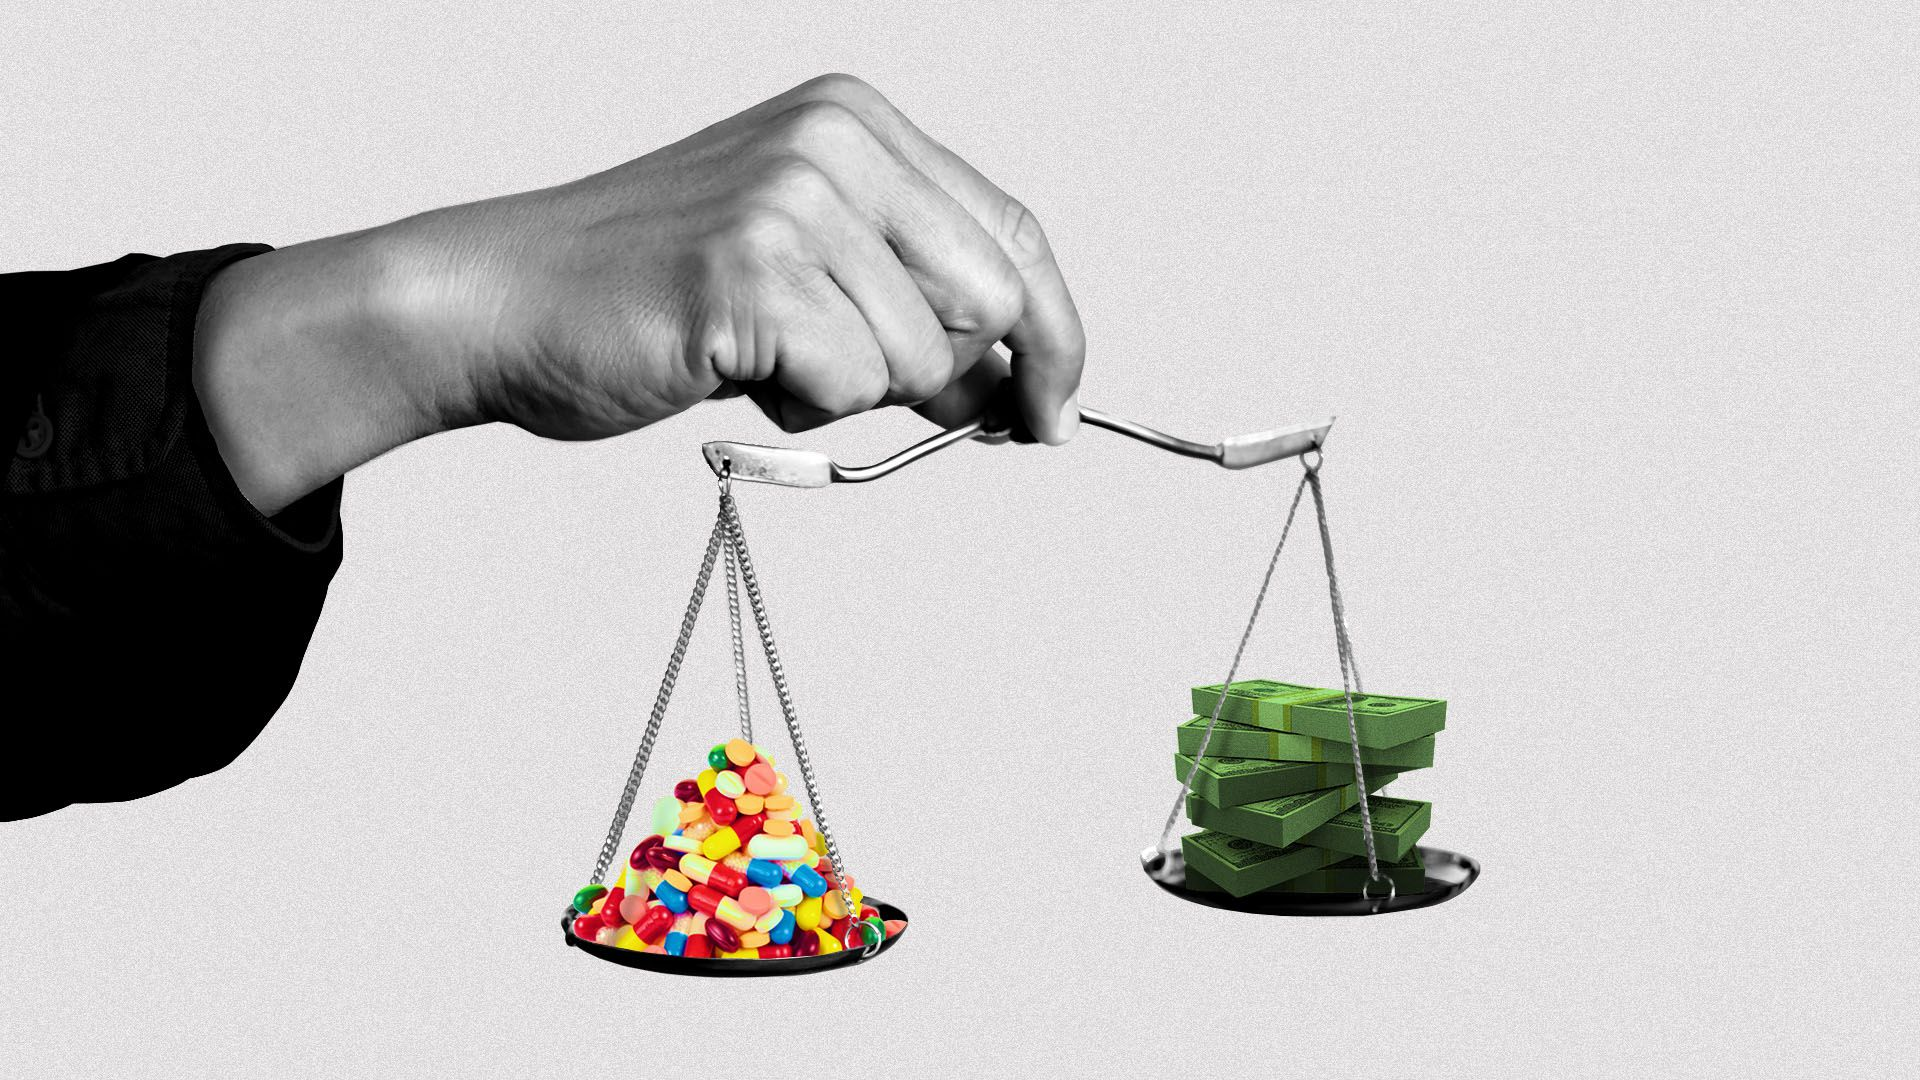 Illustration of a hand holding a small scale with pills on one side and money on the other